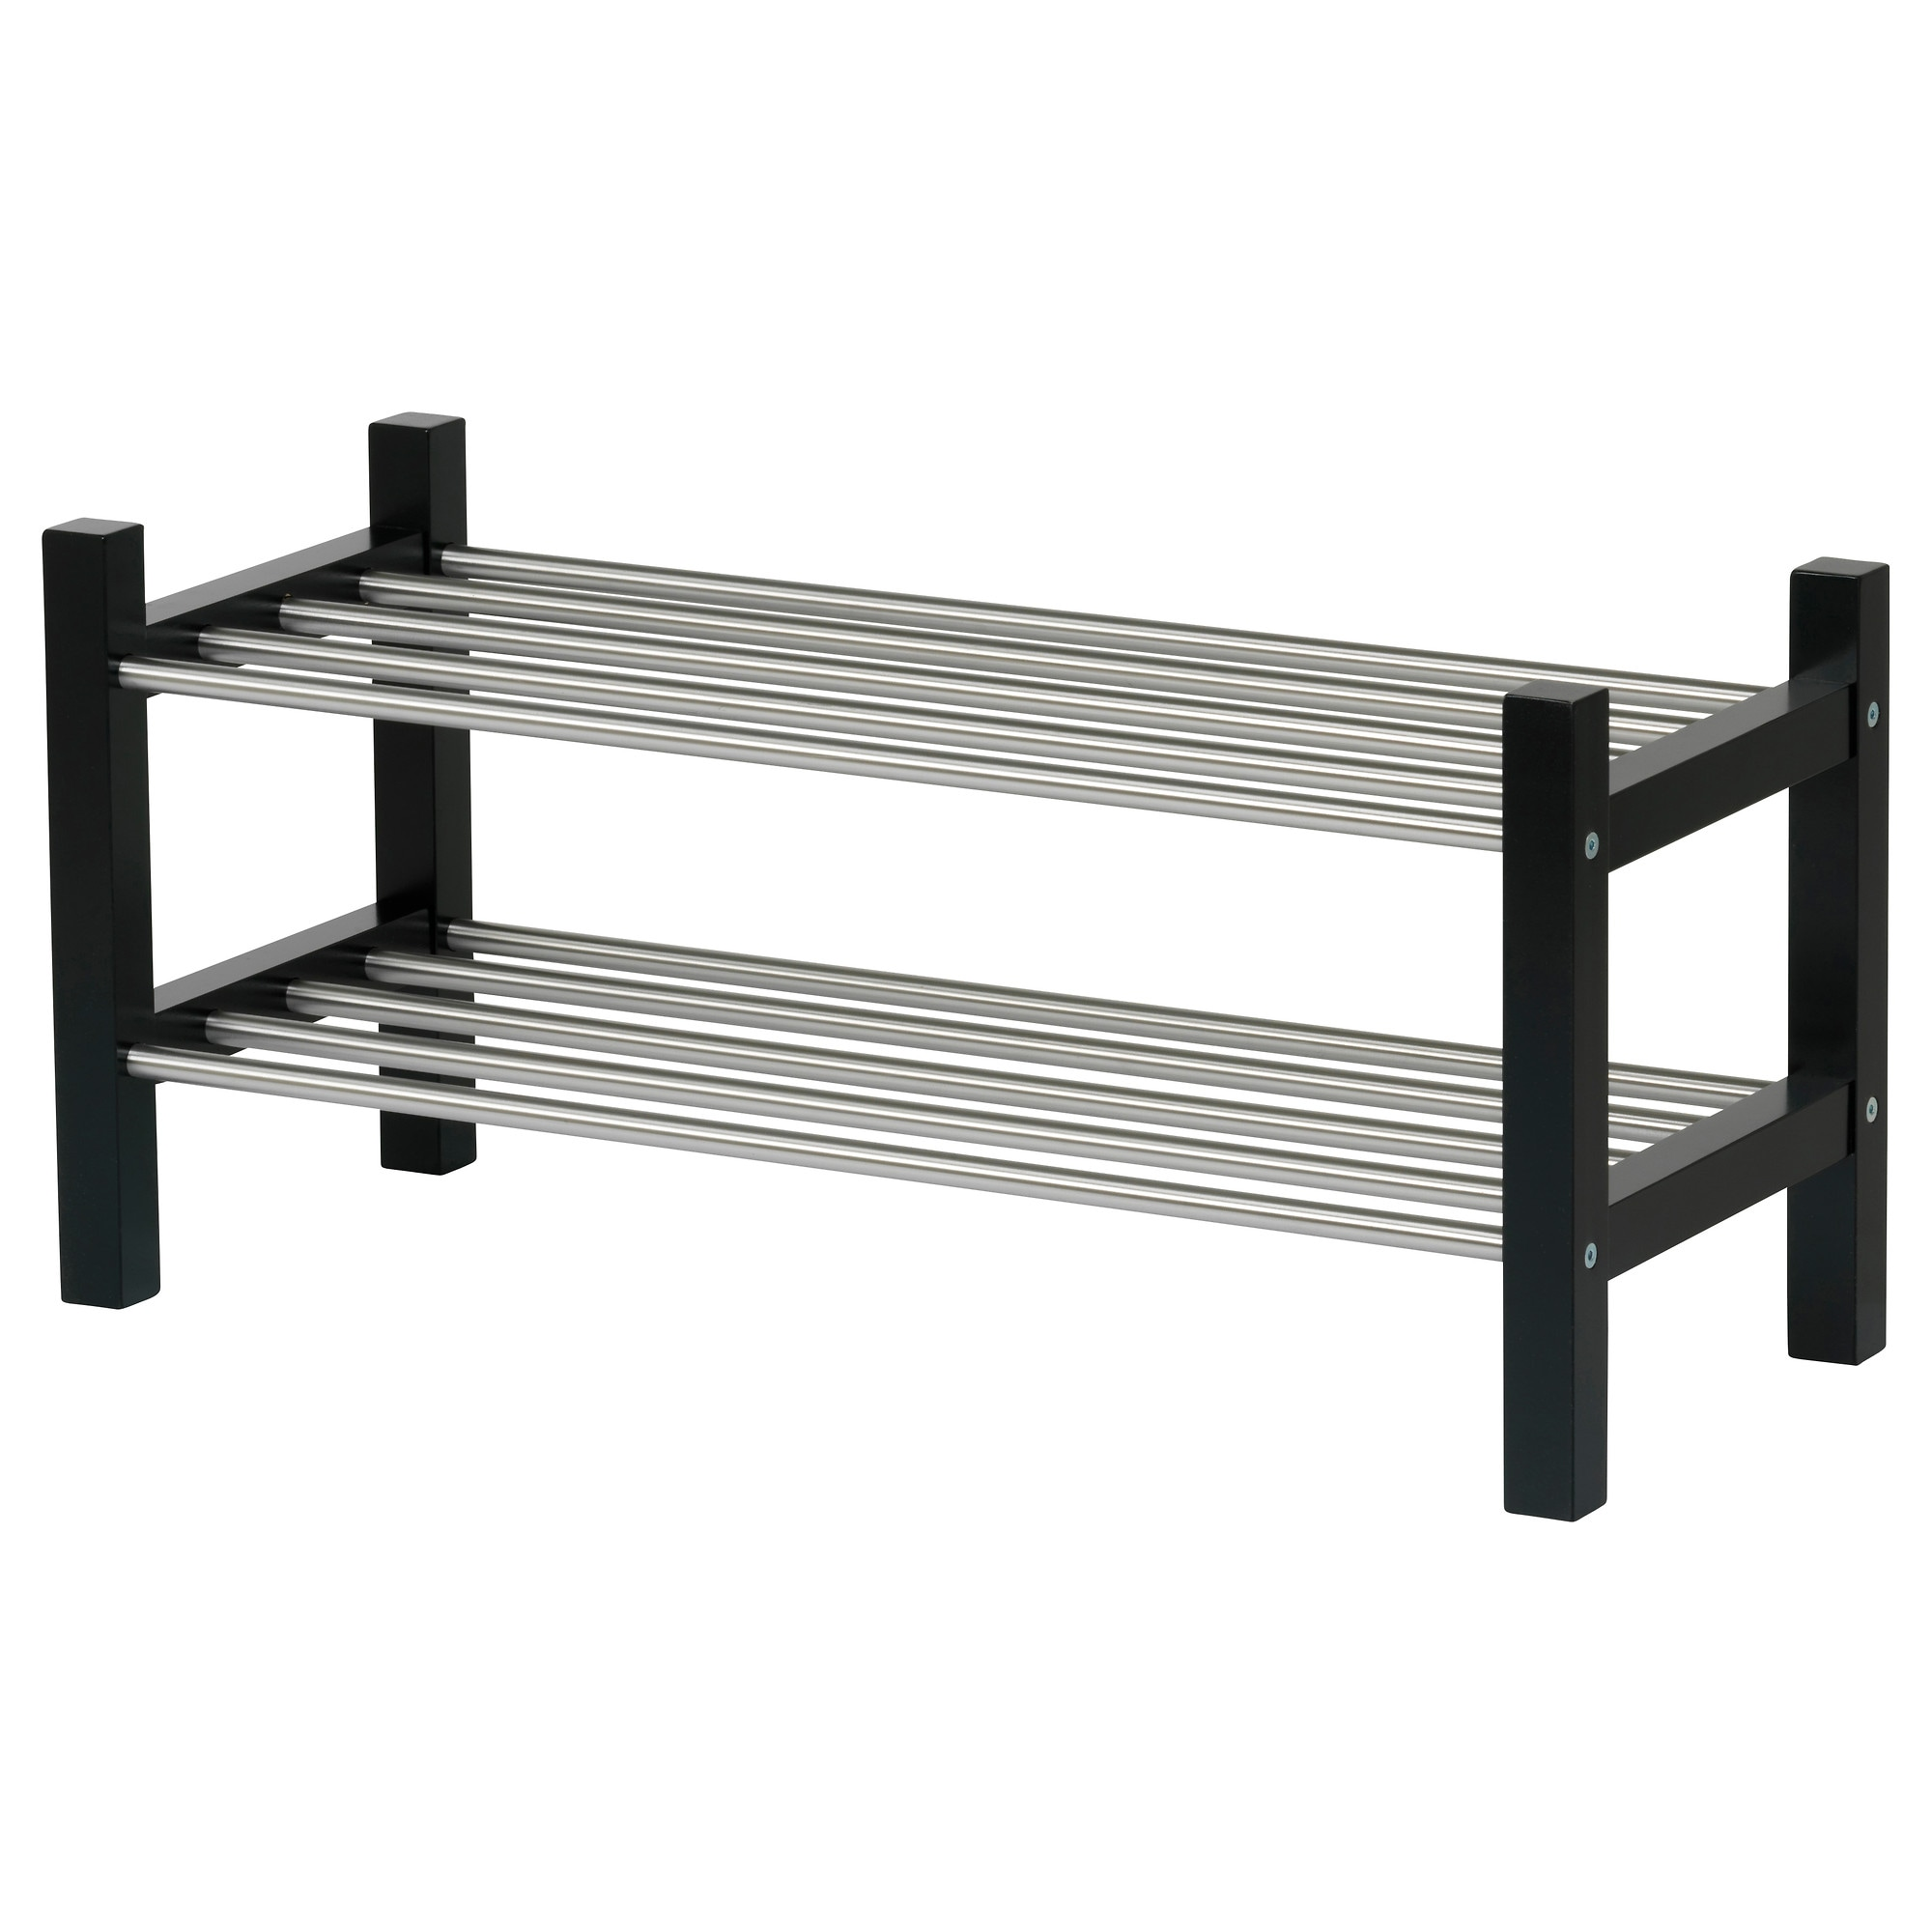 Superior TJUSIG Shoe Rack   IKEA